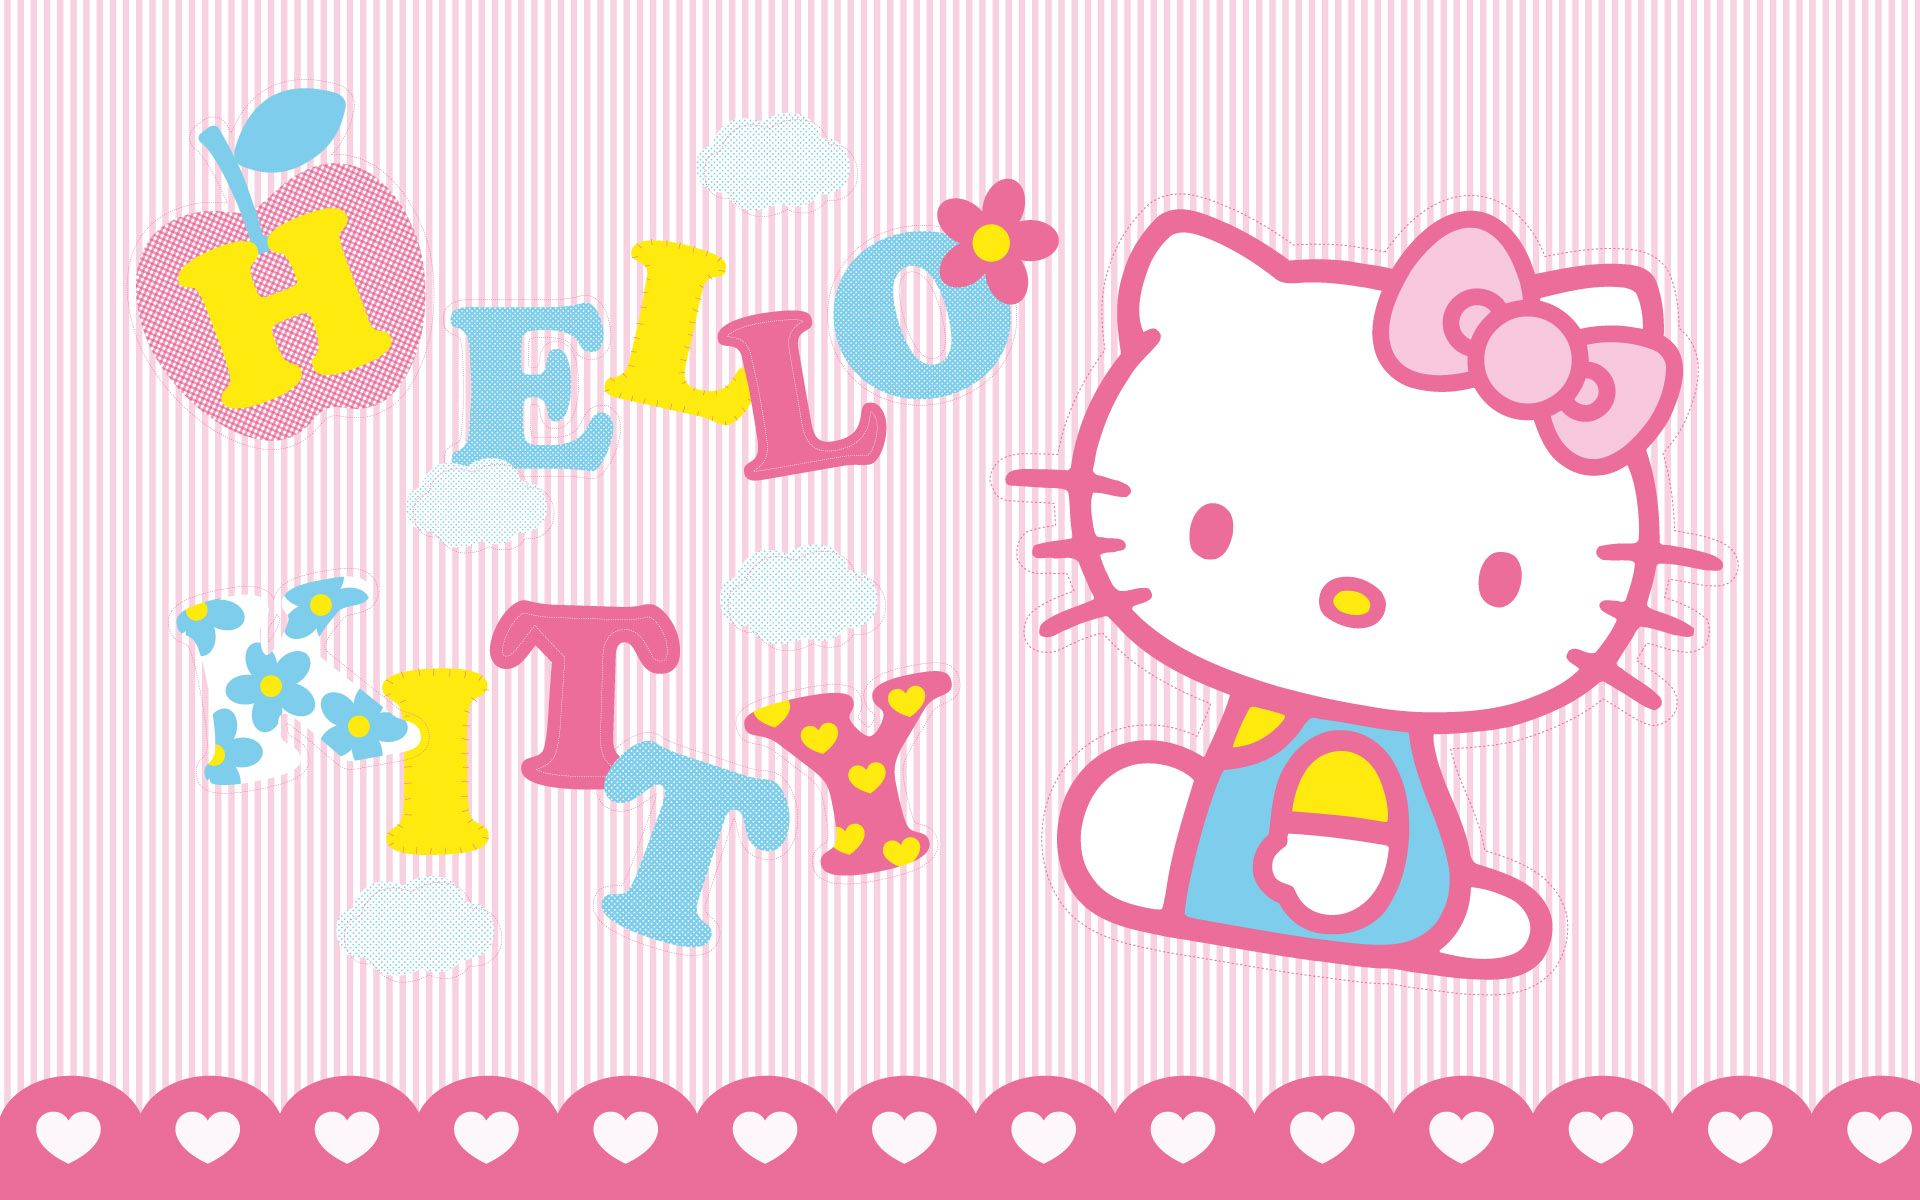 Kawaii Hello Kitty Wallpapers Top Free Kawaii Hello Kitty